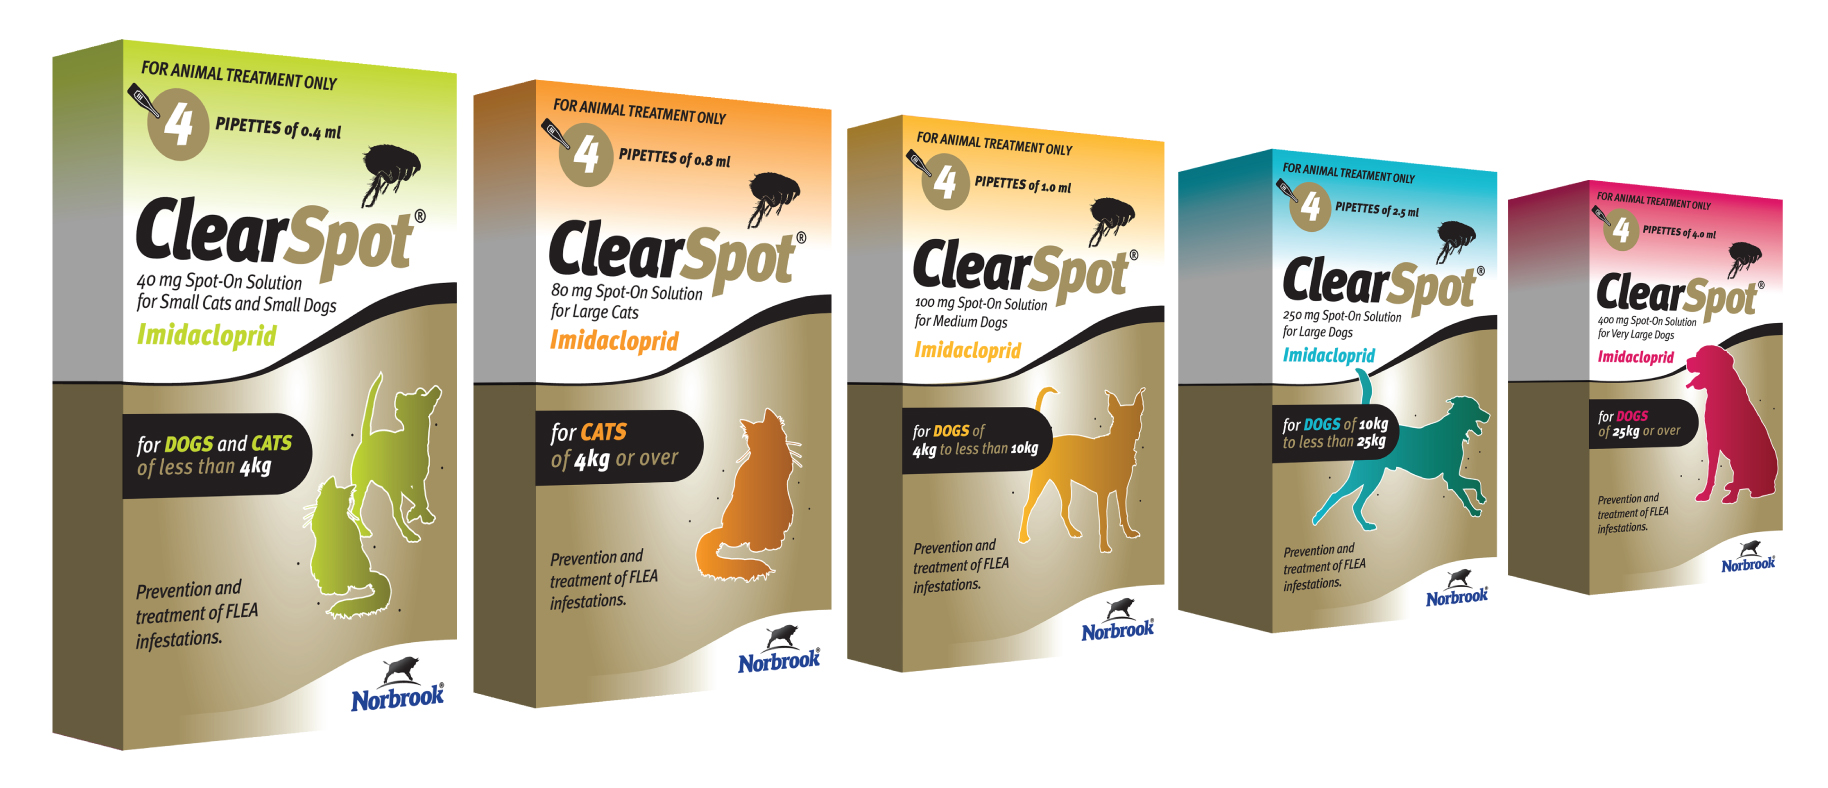 Norbrook ClearSpot Spot-On Flea Treatment for Dogs & Cats